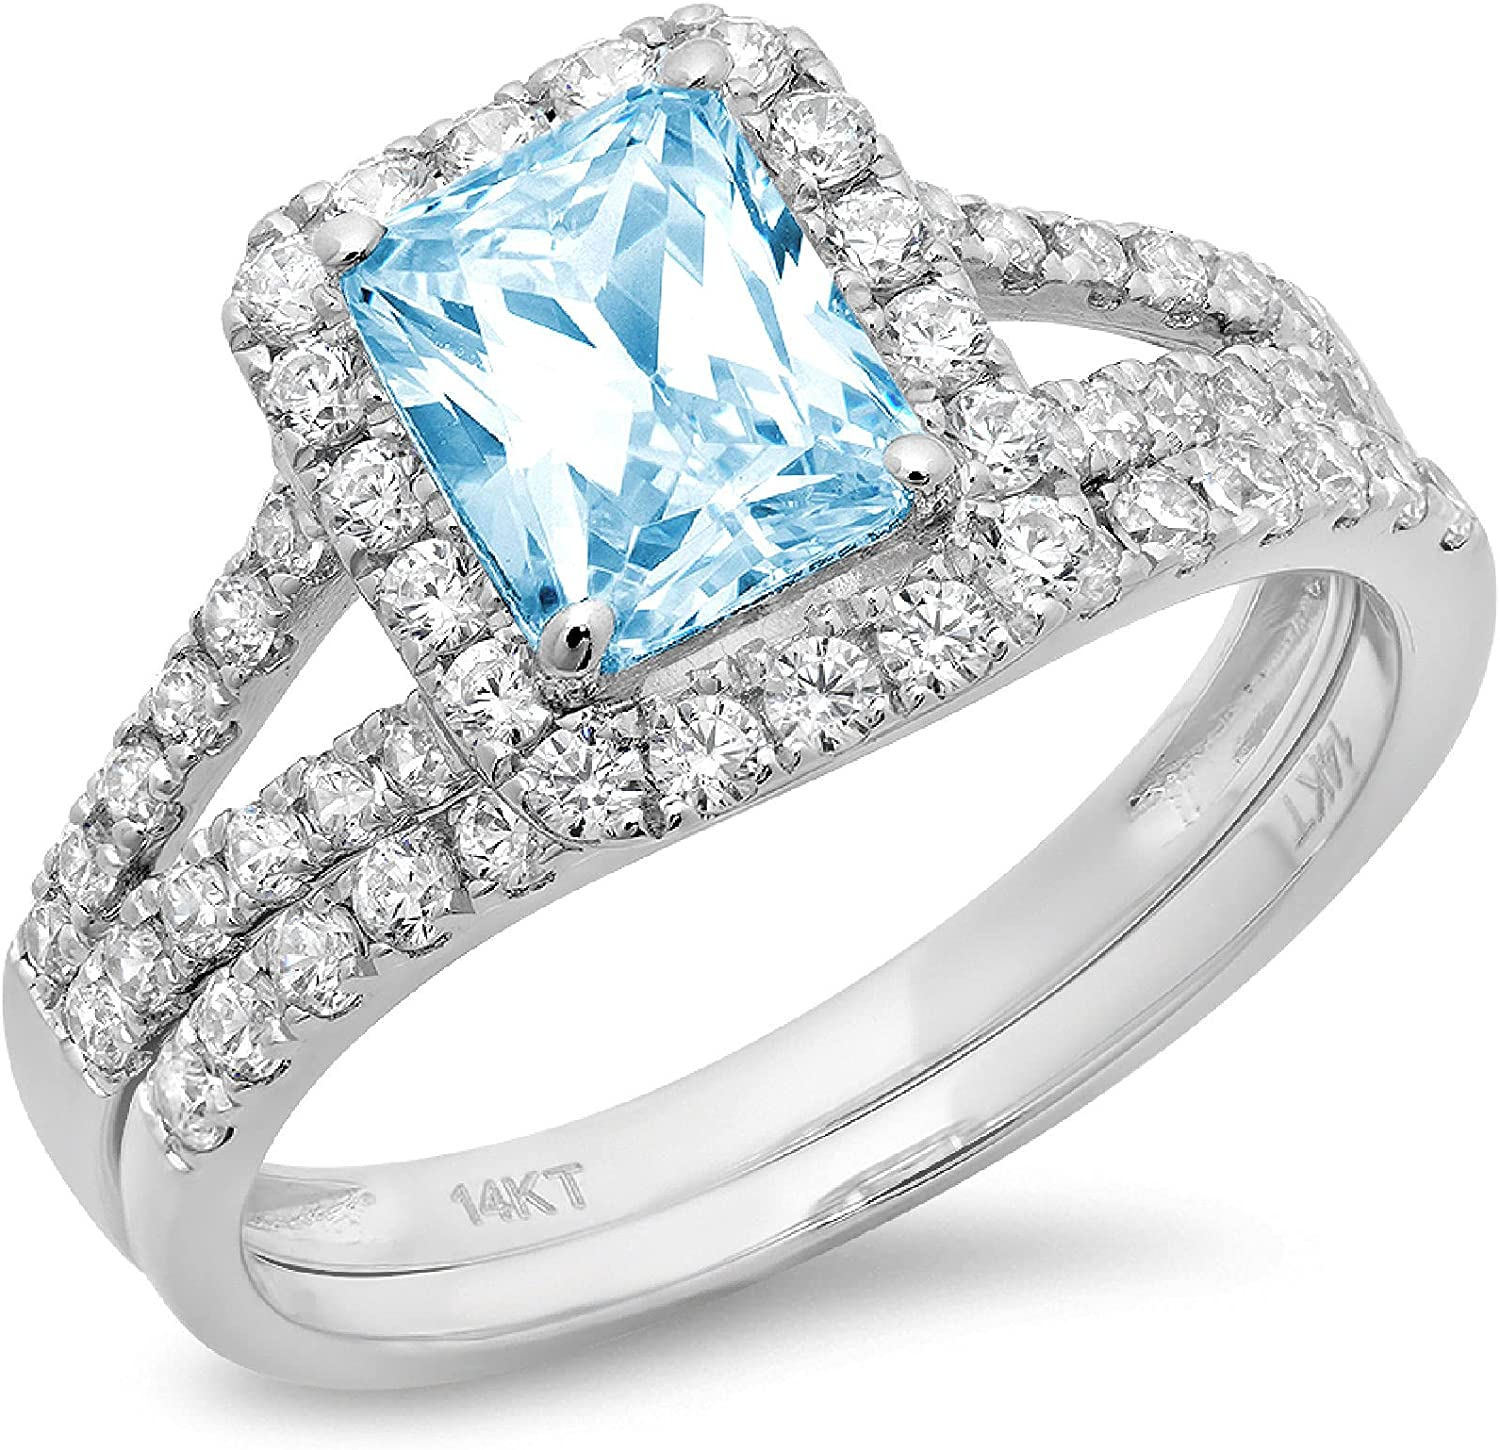 1.54ct Emerald Round Cut Pave Halo Split Shank Solitaire Accent VVS1 Ideal Natural Swiss Blue Topaz Engagement Promise Designer Anniversary Wedding Bridal Ring band set 14k White Gold